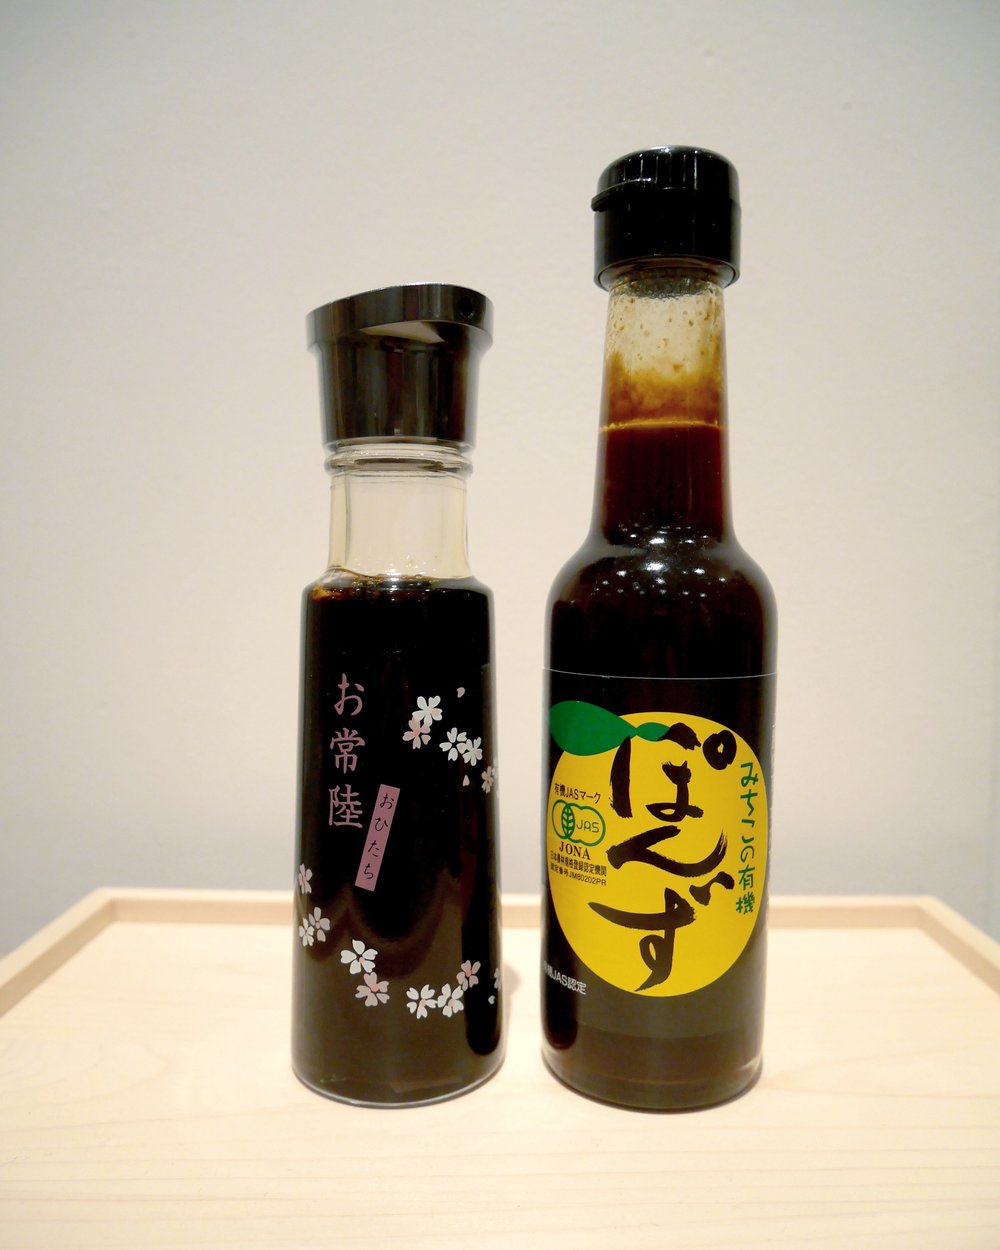 Japanese sauce and epicerie Japonaise